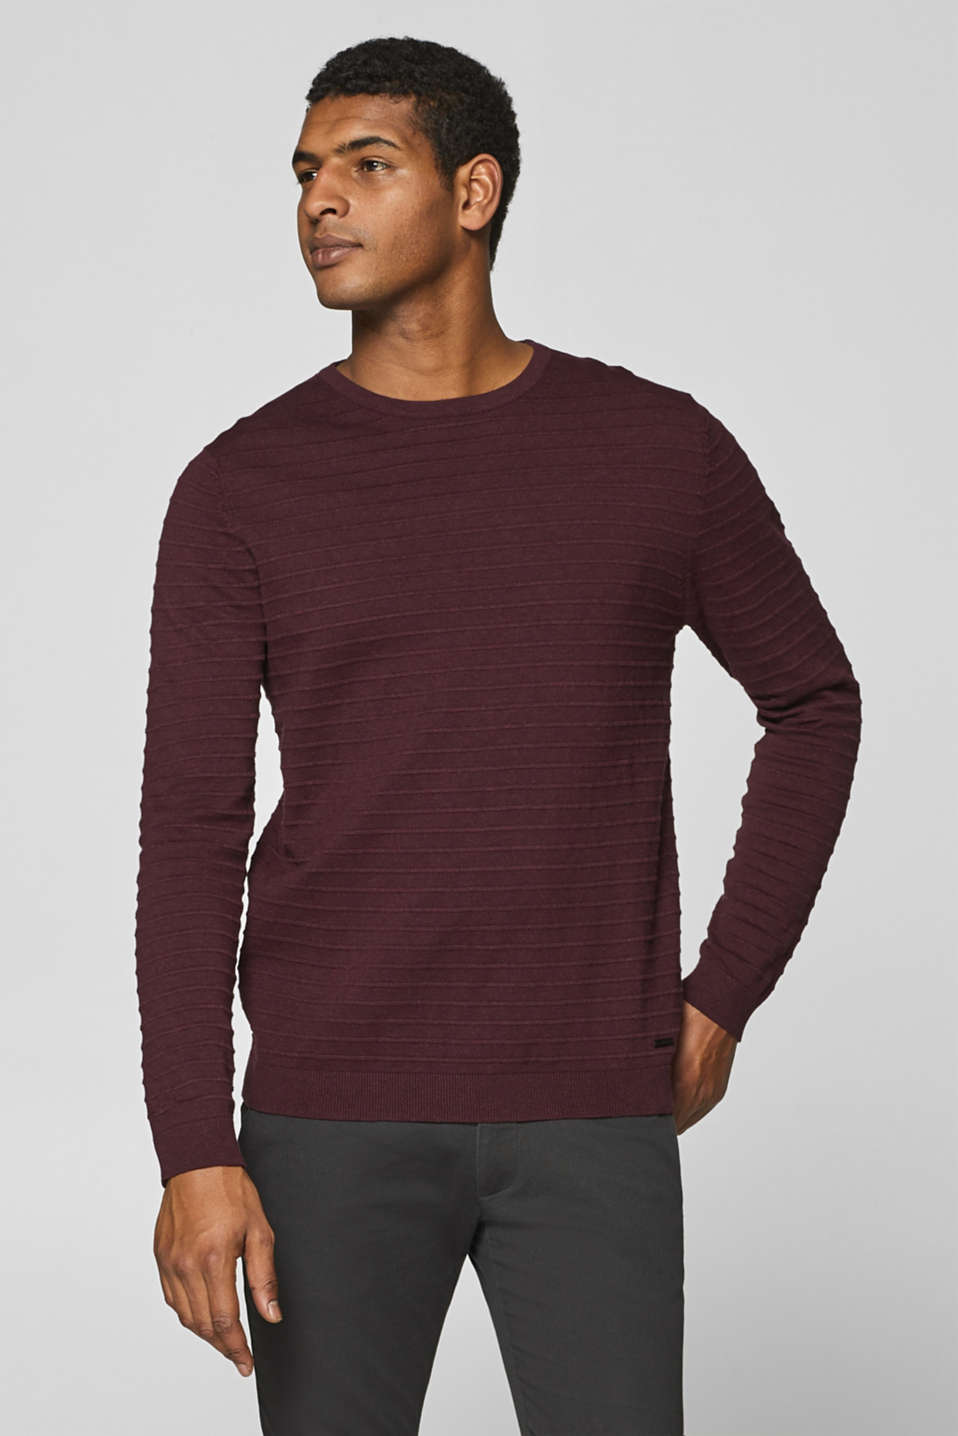 Esprit - Textured stripe jumper, 100% cotton